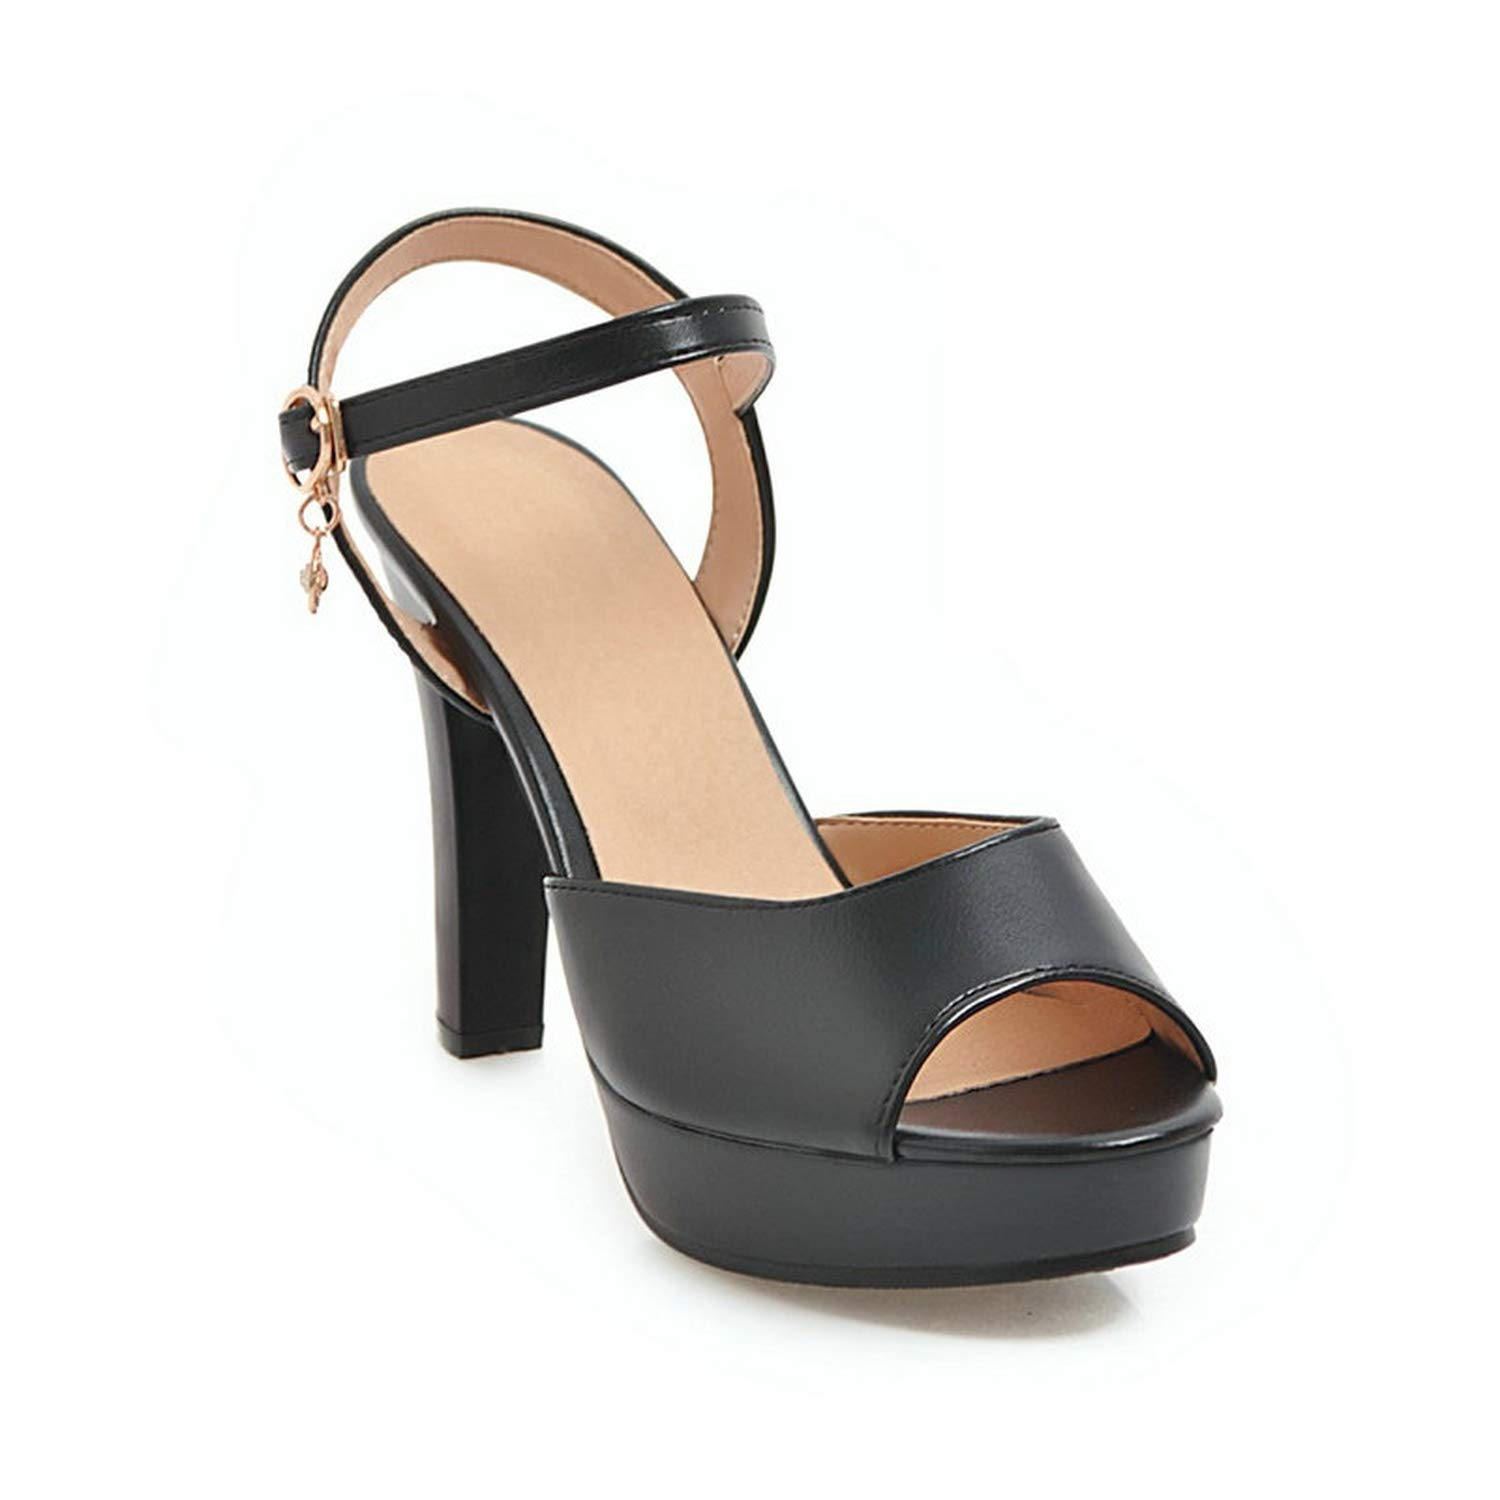 END GAME Dress Shoes high Heel Sandals Woman asual Summer Women Shoes Pink Black White Large Size 43,Black,8